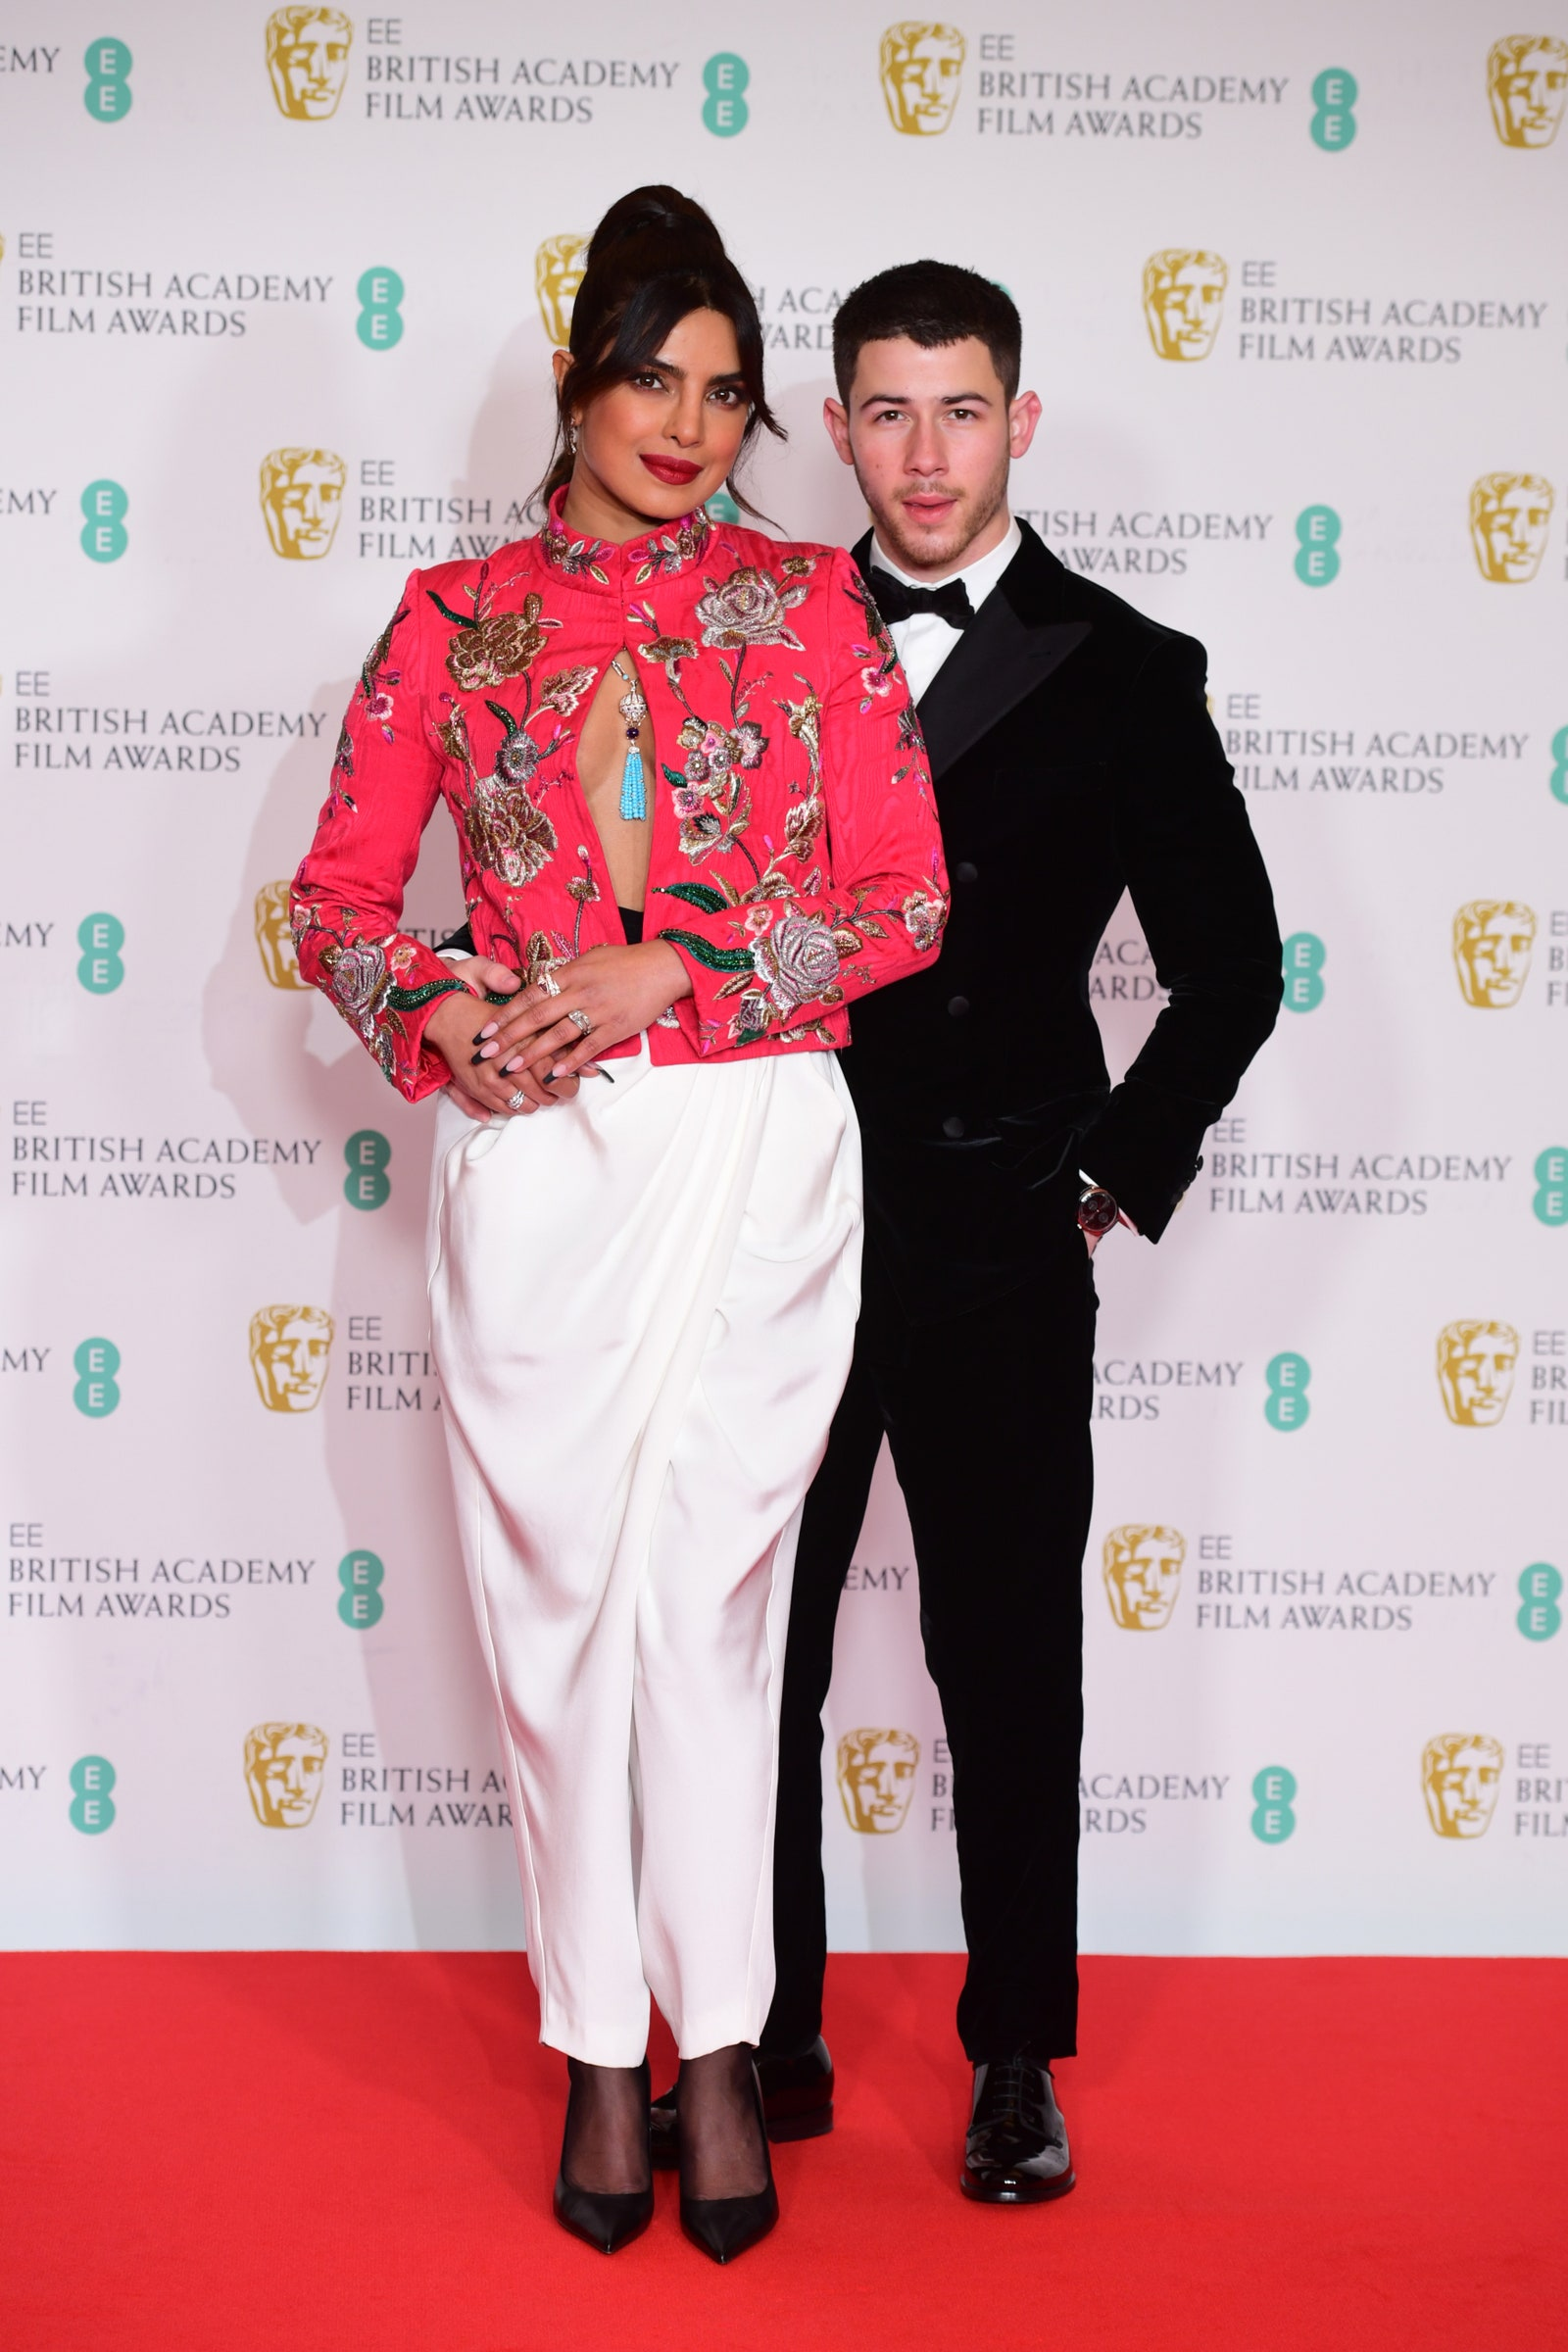 Priyanka Chopra Jonas and her husband Nick Jonas BAFTA Awards